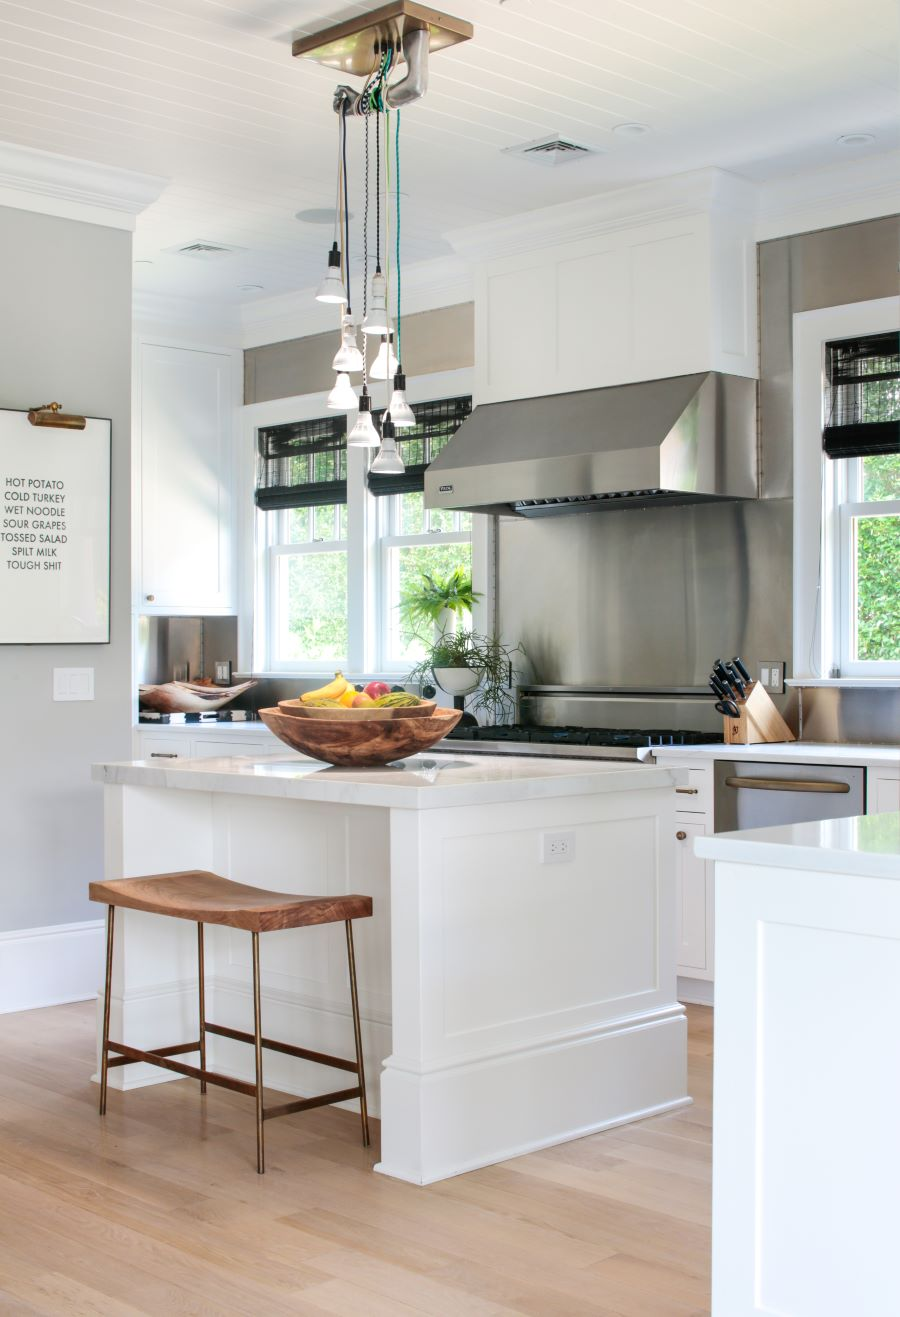 Bring Interior Design Visions to Life With Lutron Lighting Control